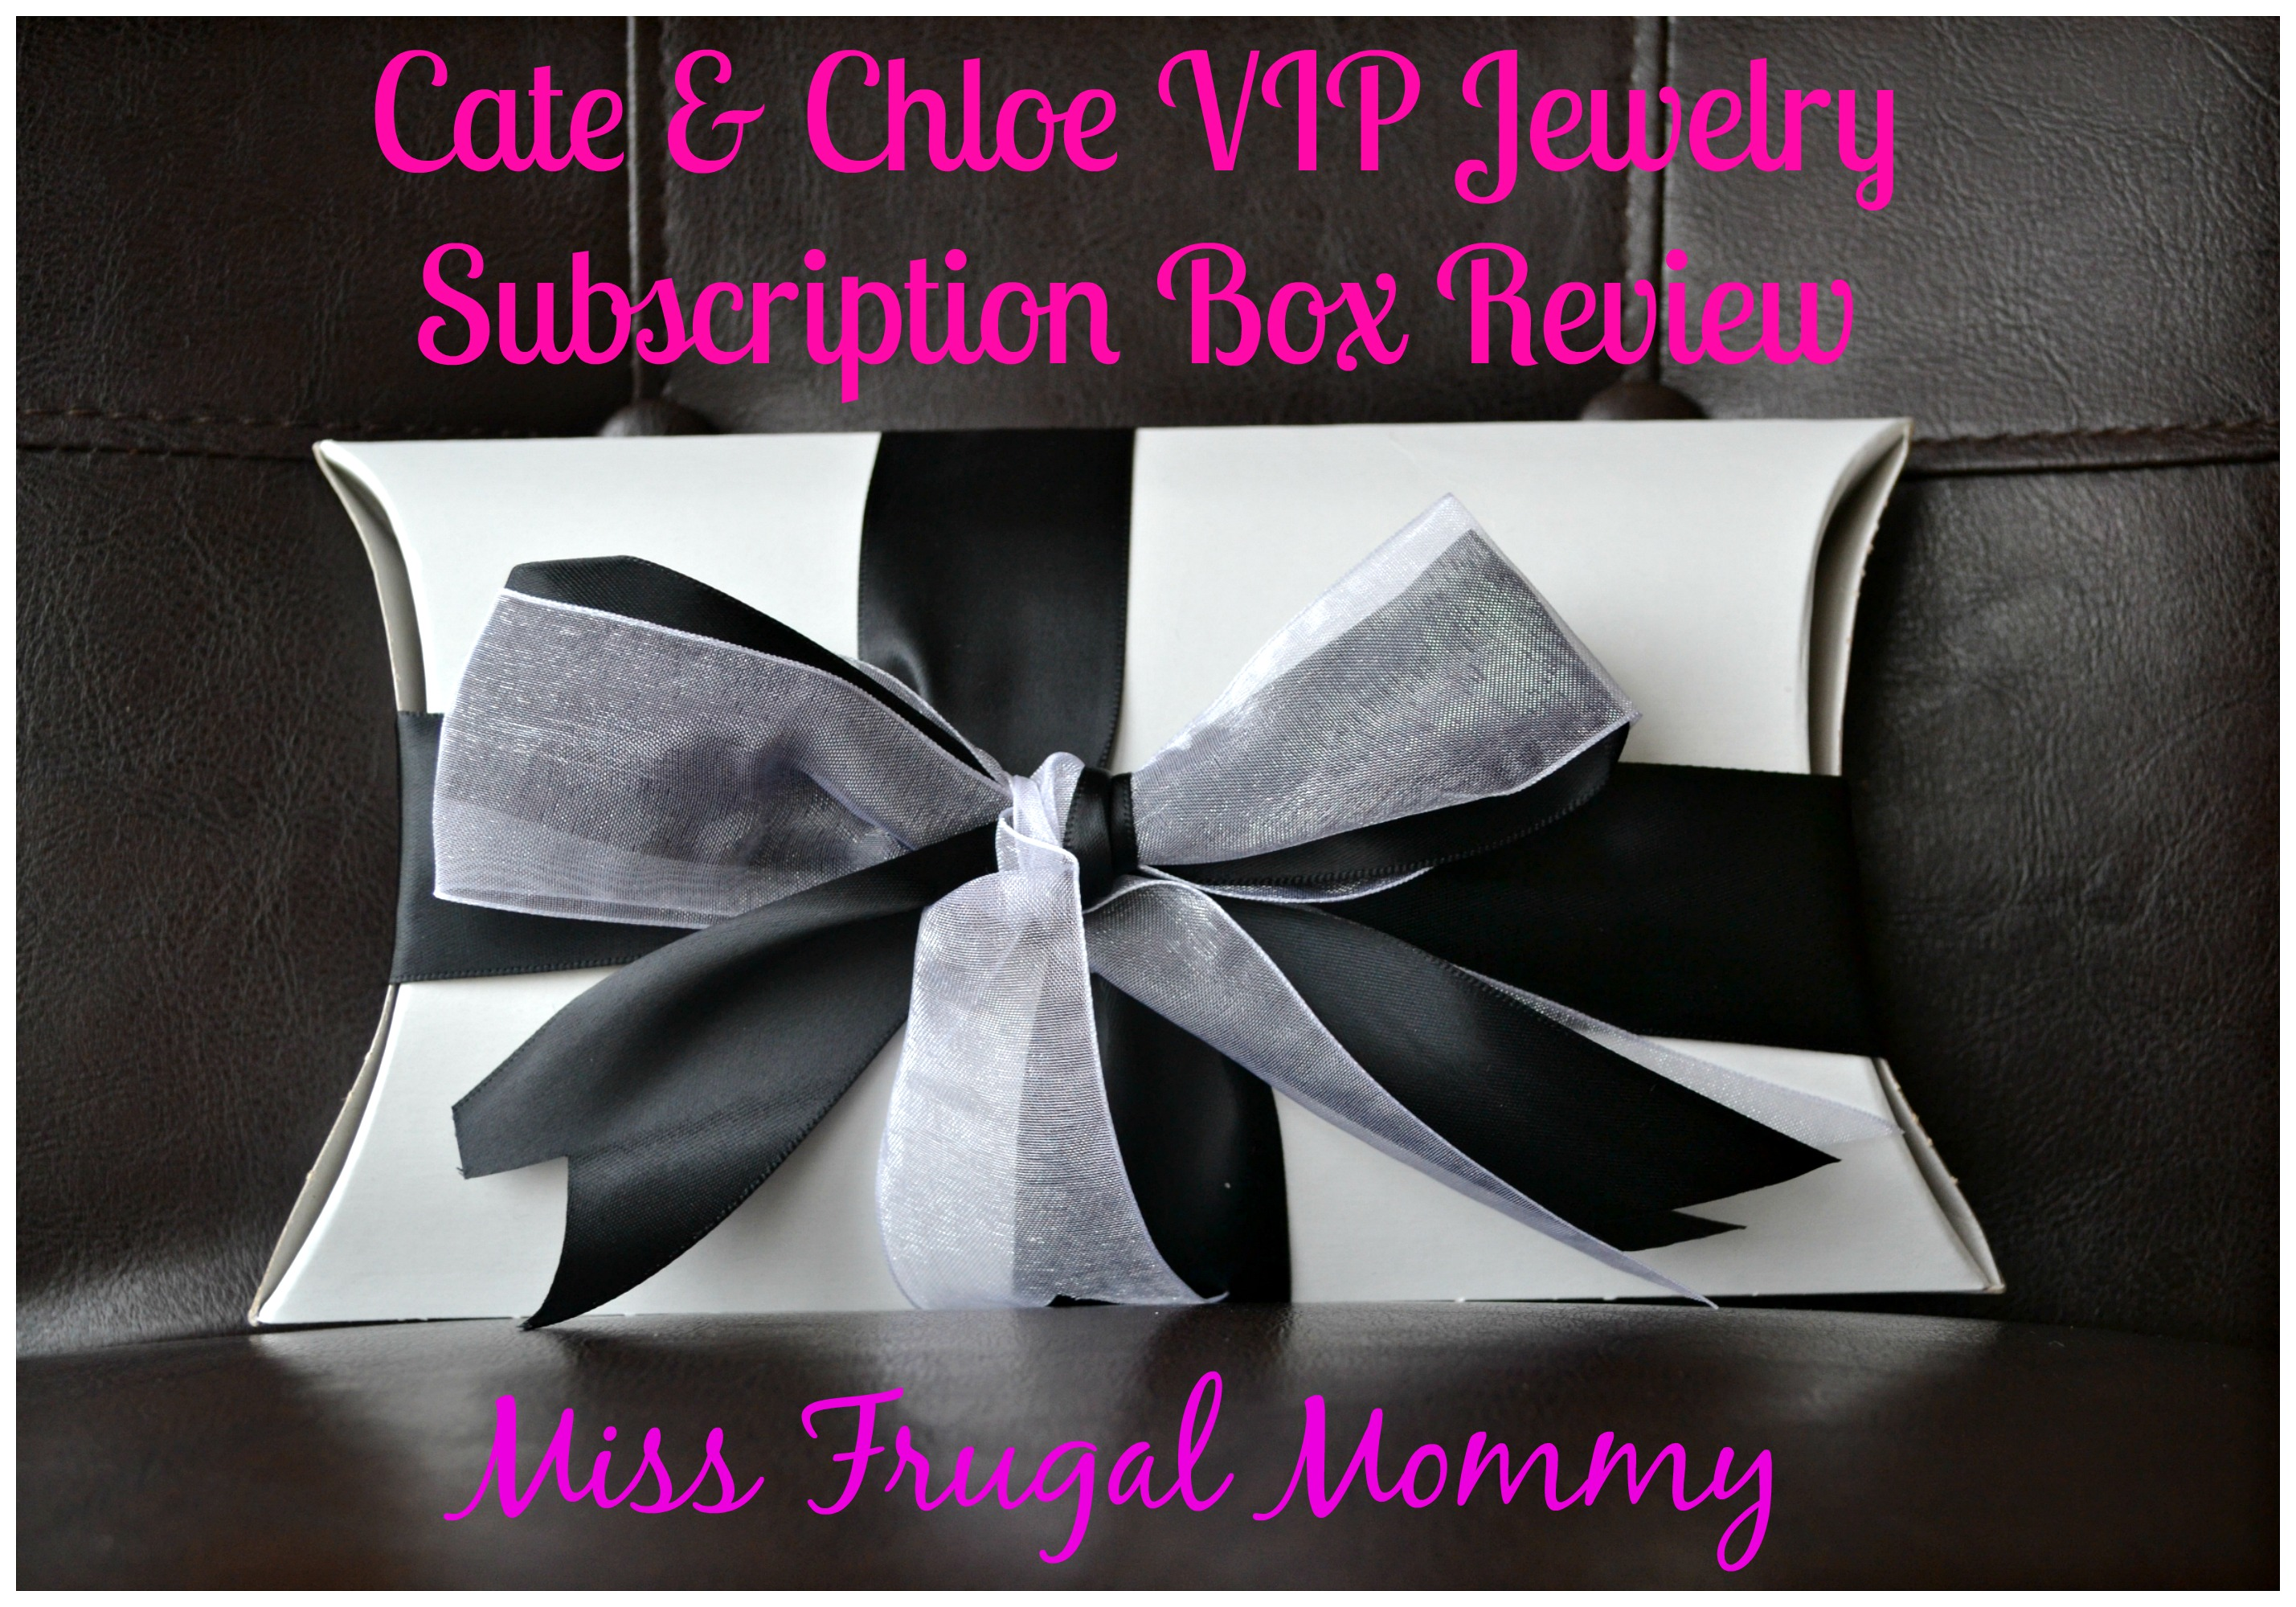 Cate & Chloe VIP Jewelry Subscription Box Review